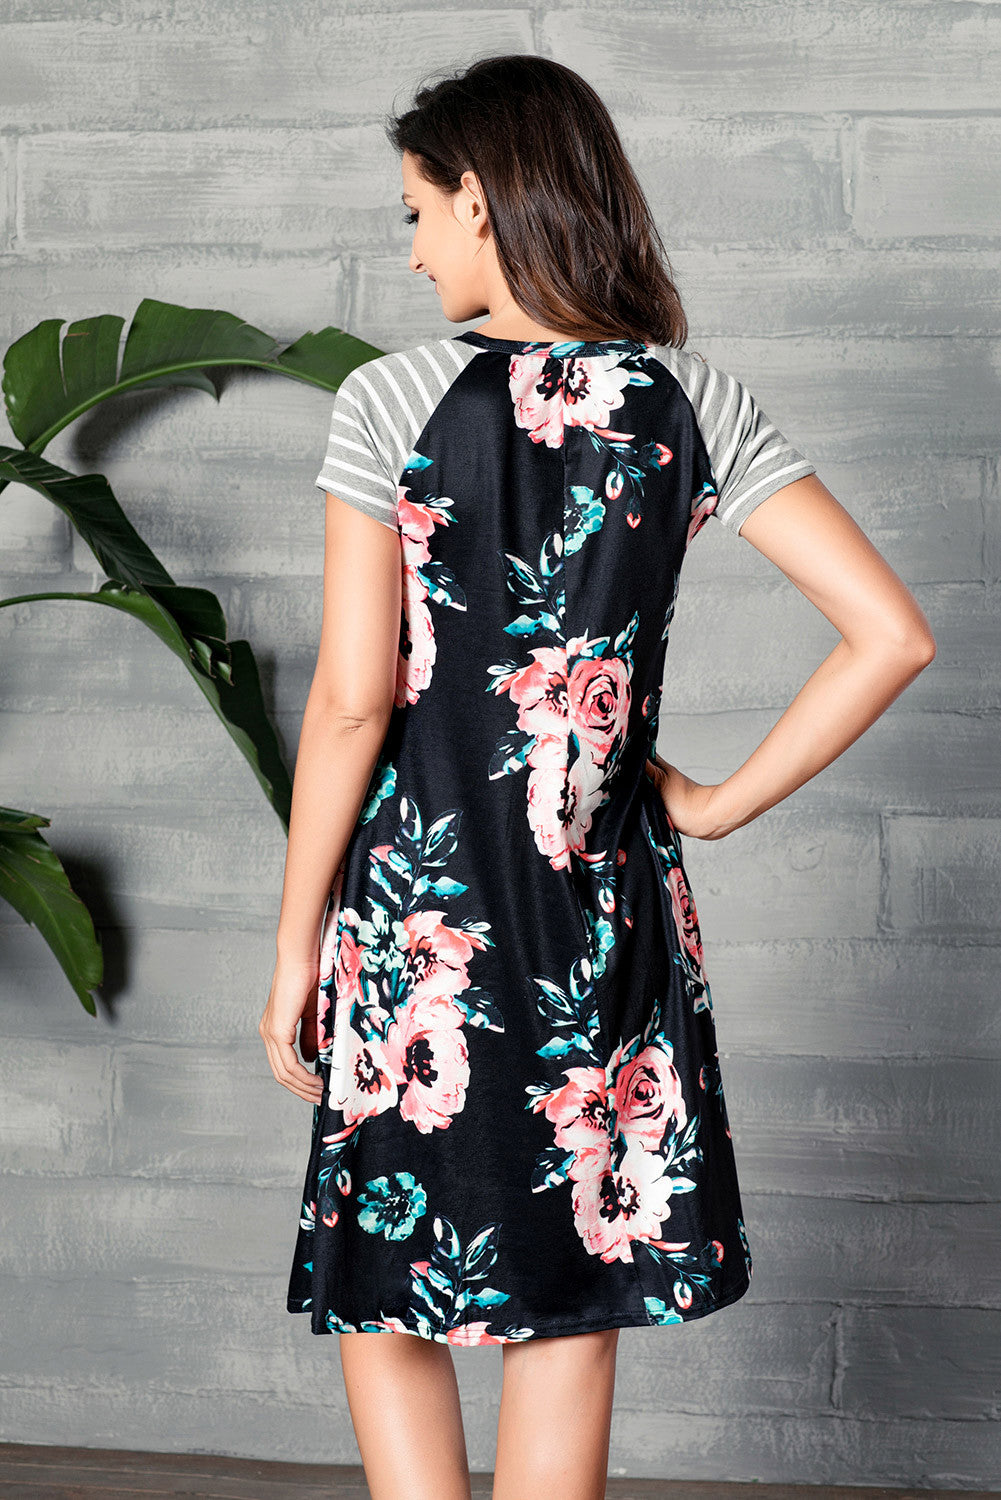 The Flowery Piece Black Floral Print A-line Loose T-shirt Dress